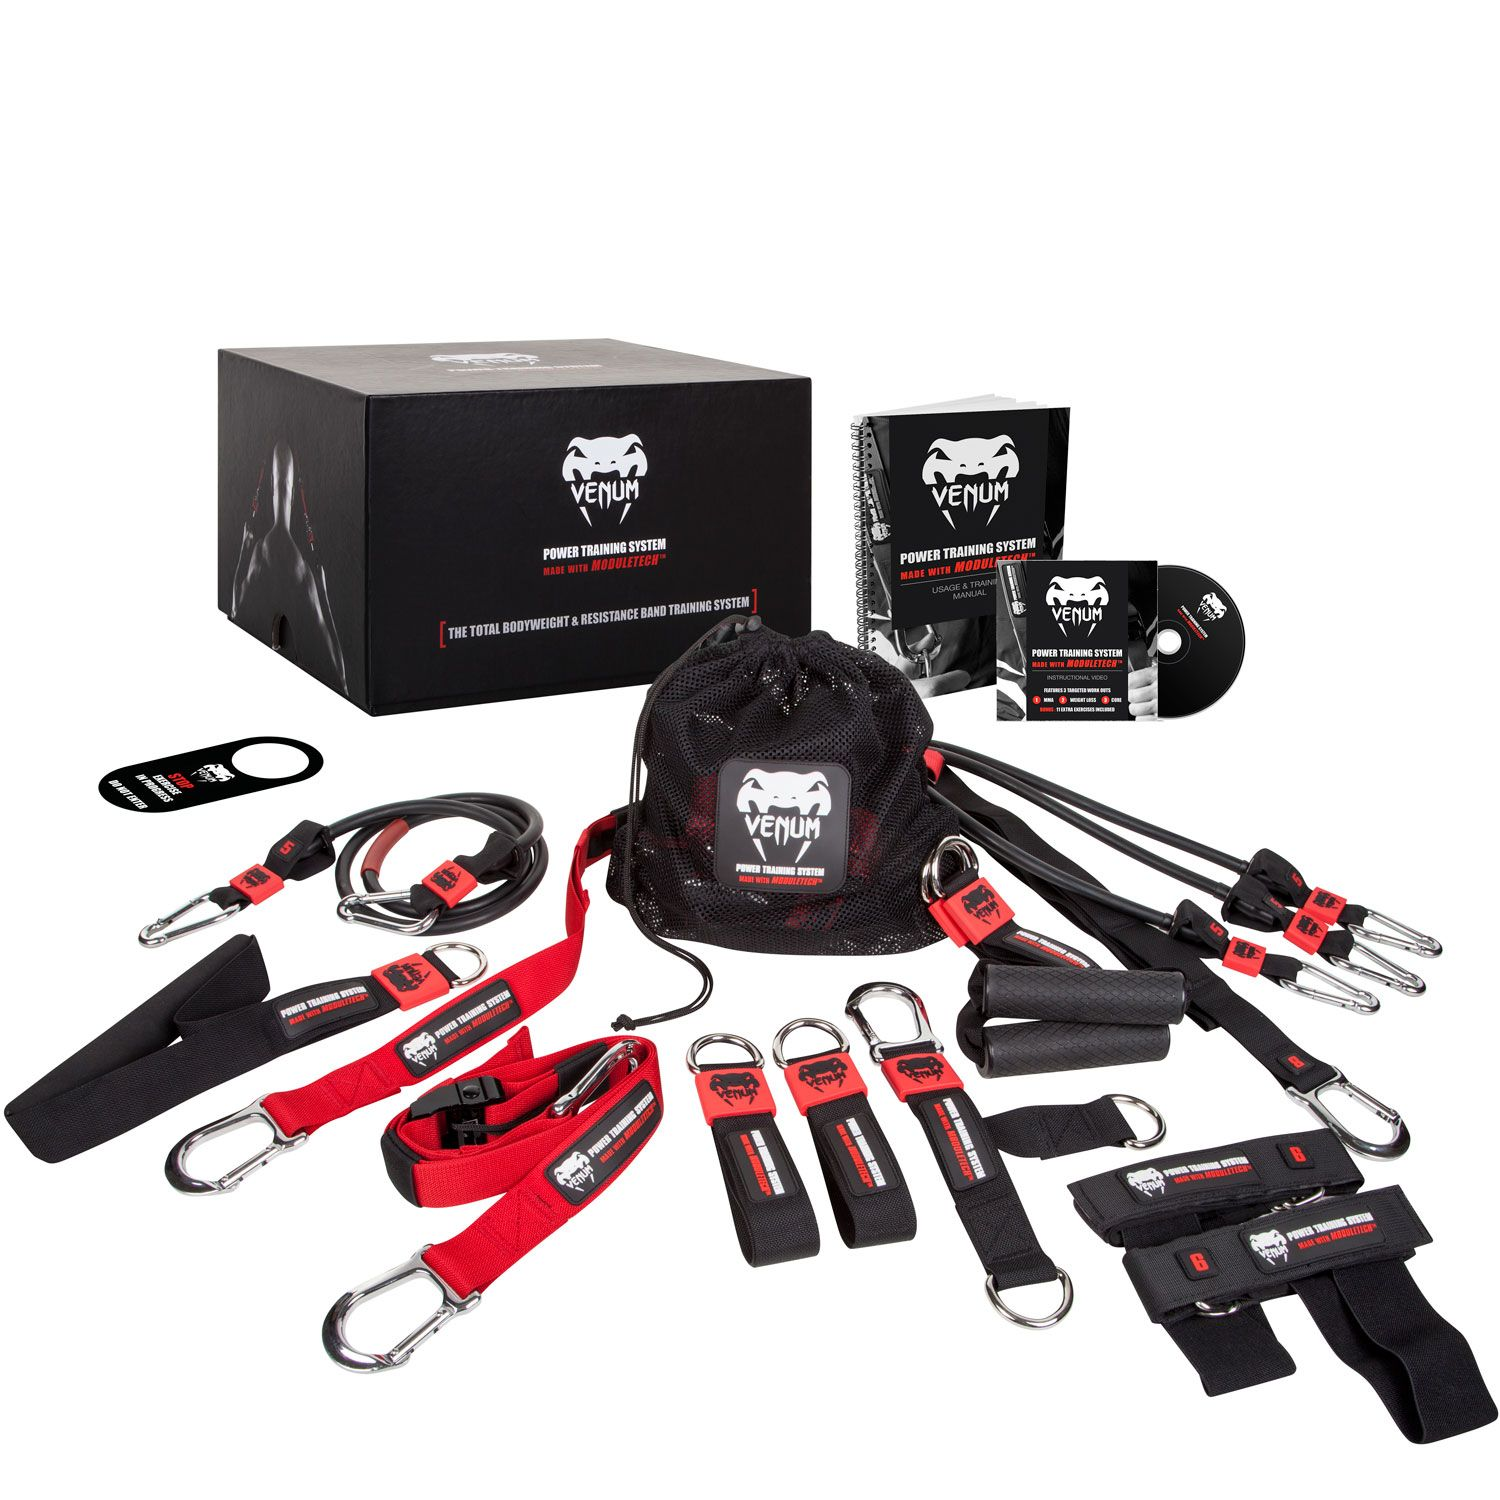 Venum Power Training System - PTS - Without box